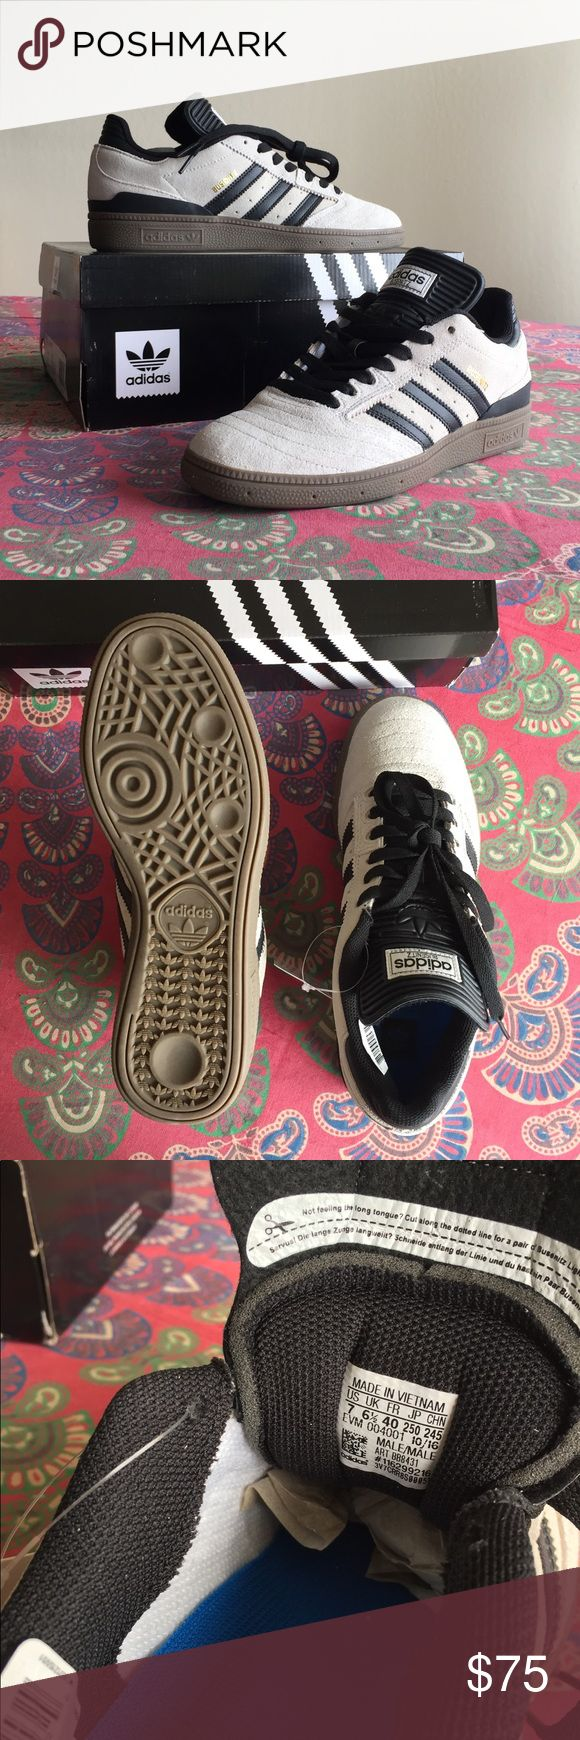 adidas Busenitz Pro Skate shoe NEVER BEEN WORN!! In excellent condition. White suede with classic black stripes. Tongue is adjustable so can be customized to your look/style. US women's size 8/men's size 7. #adidas #skate #blackandwhite adidas Shoes Athletic Shoes